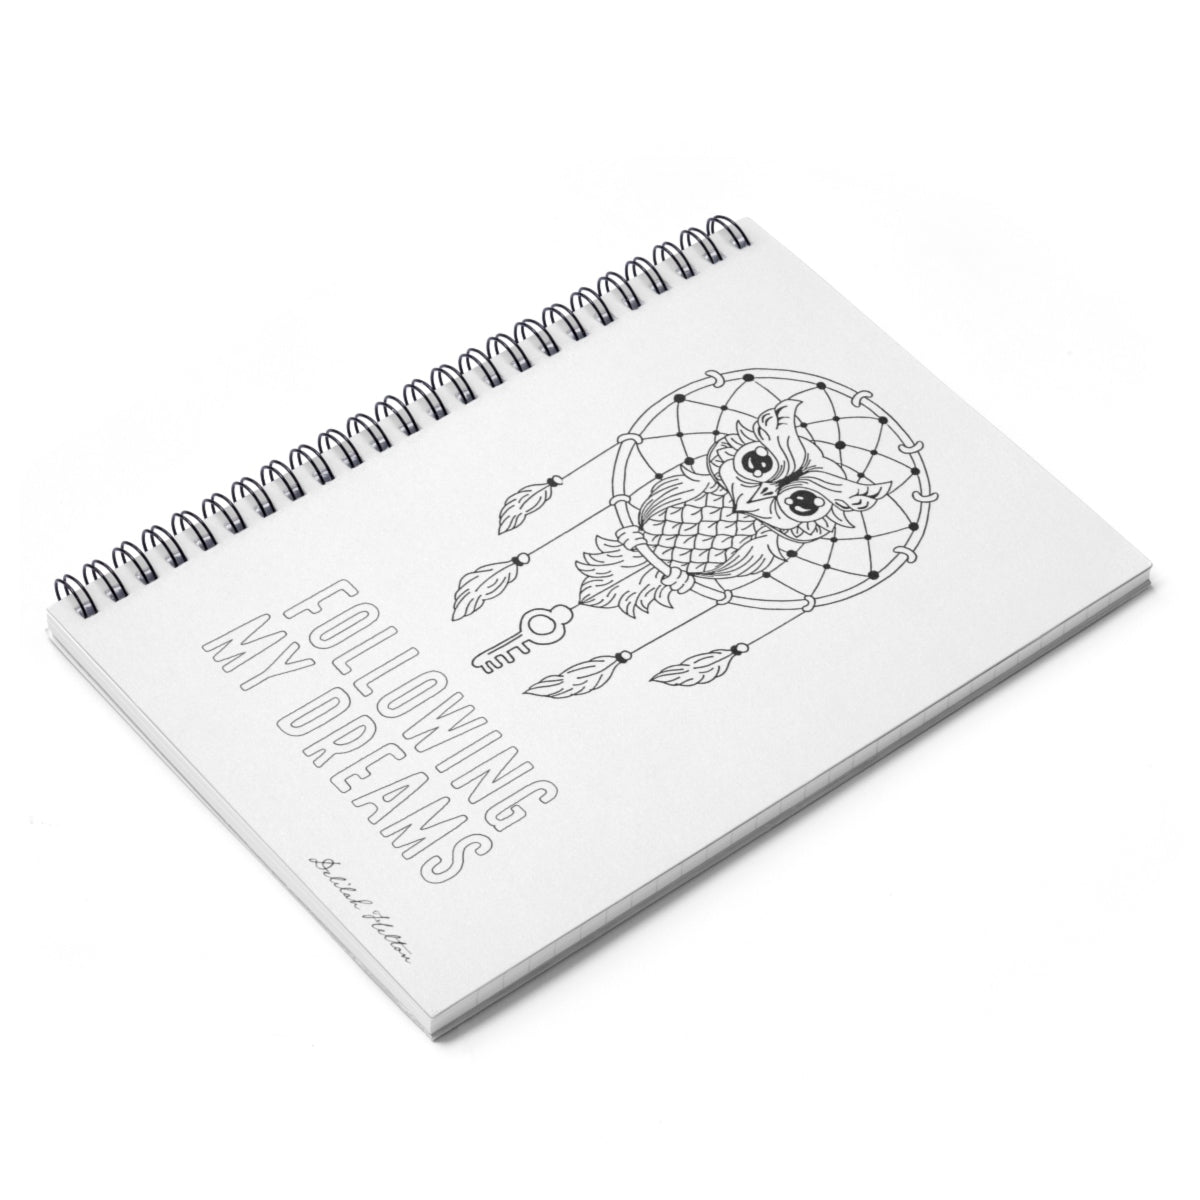 Following My Dreams - Color The Cover Spiral Notebook - Rule Lined